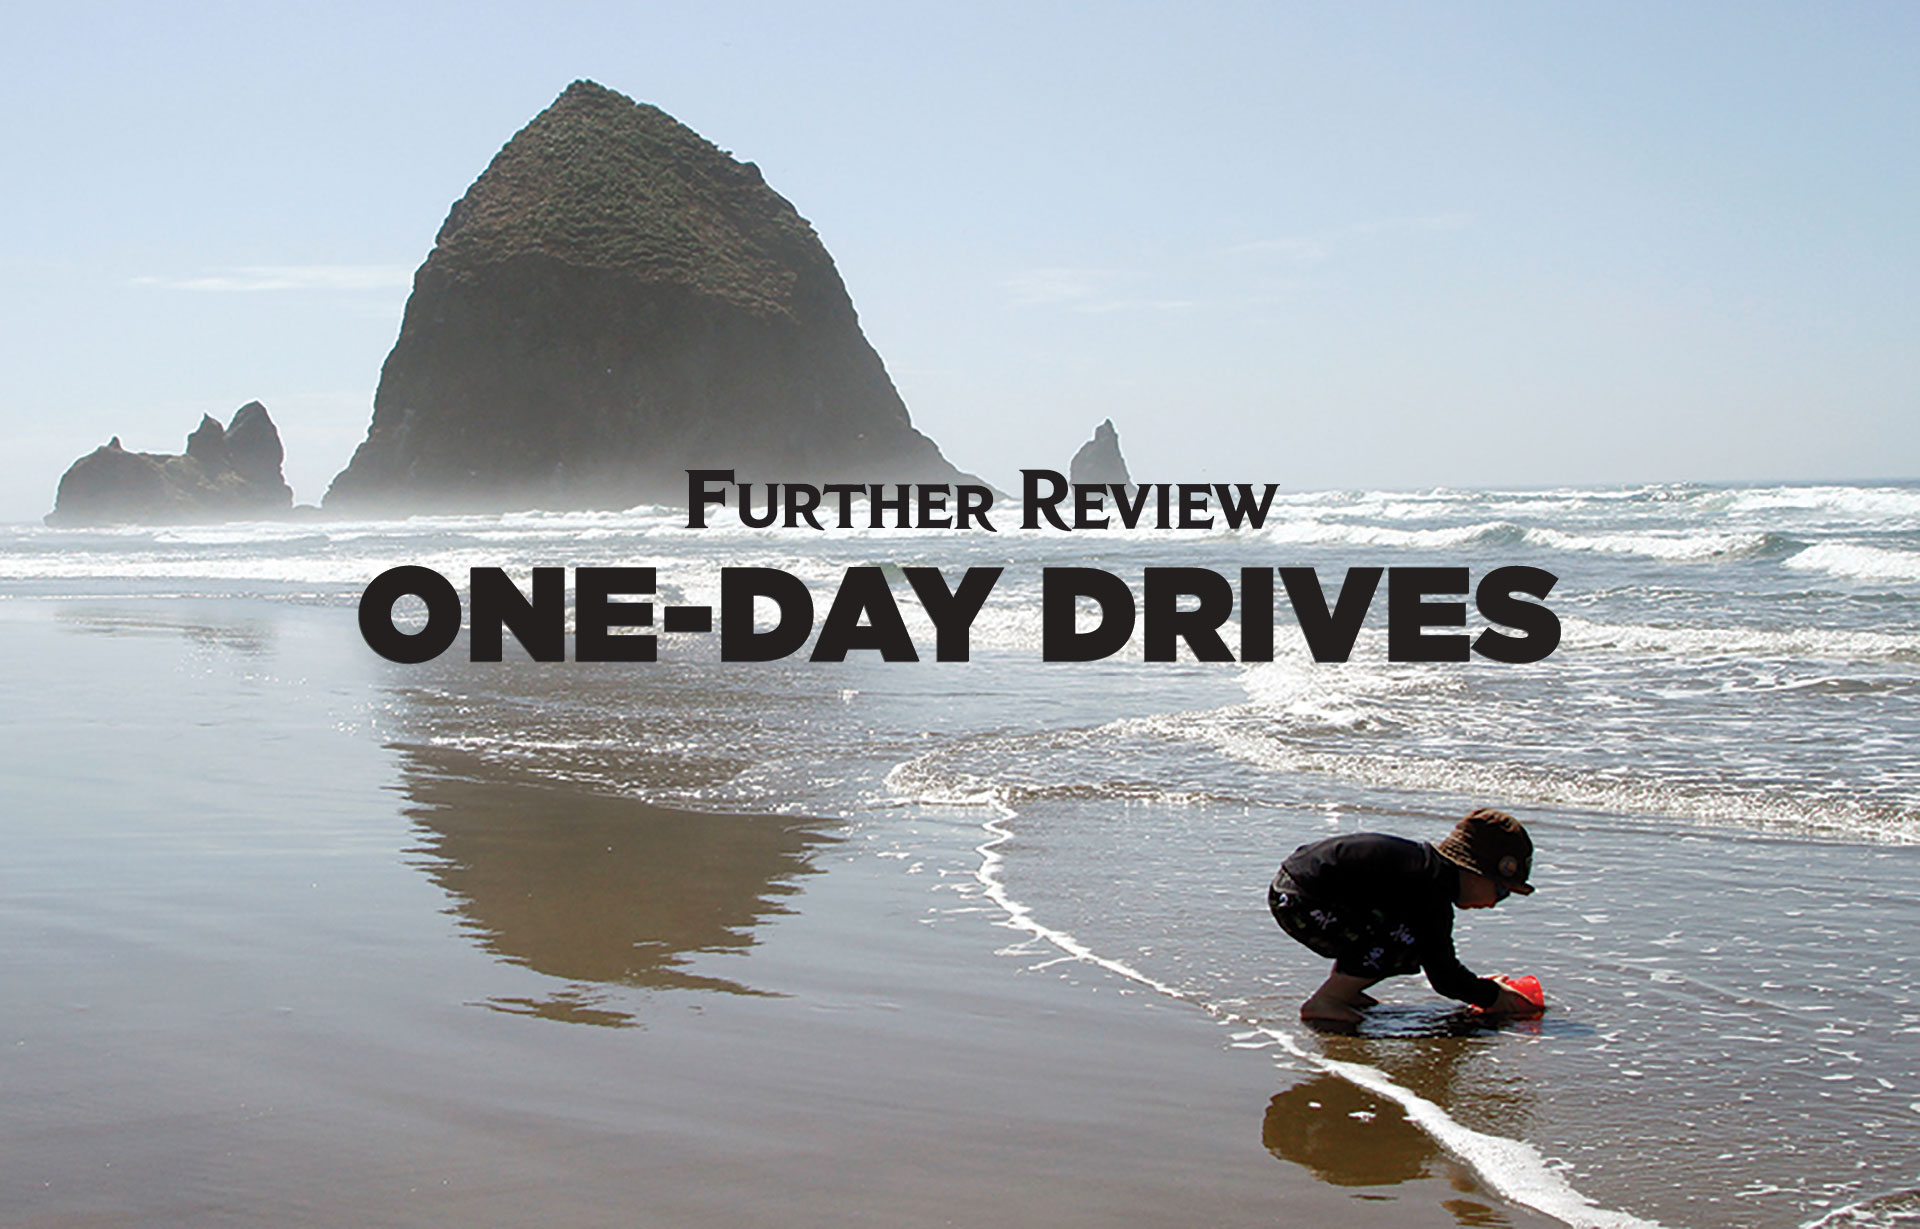 One-day drives | The Spokesman-Review